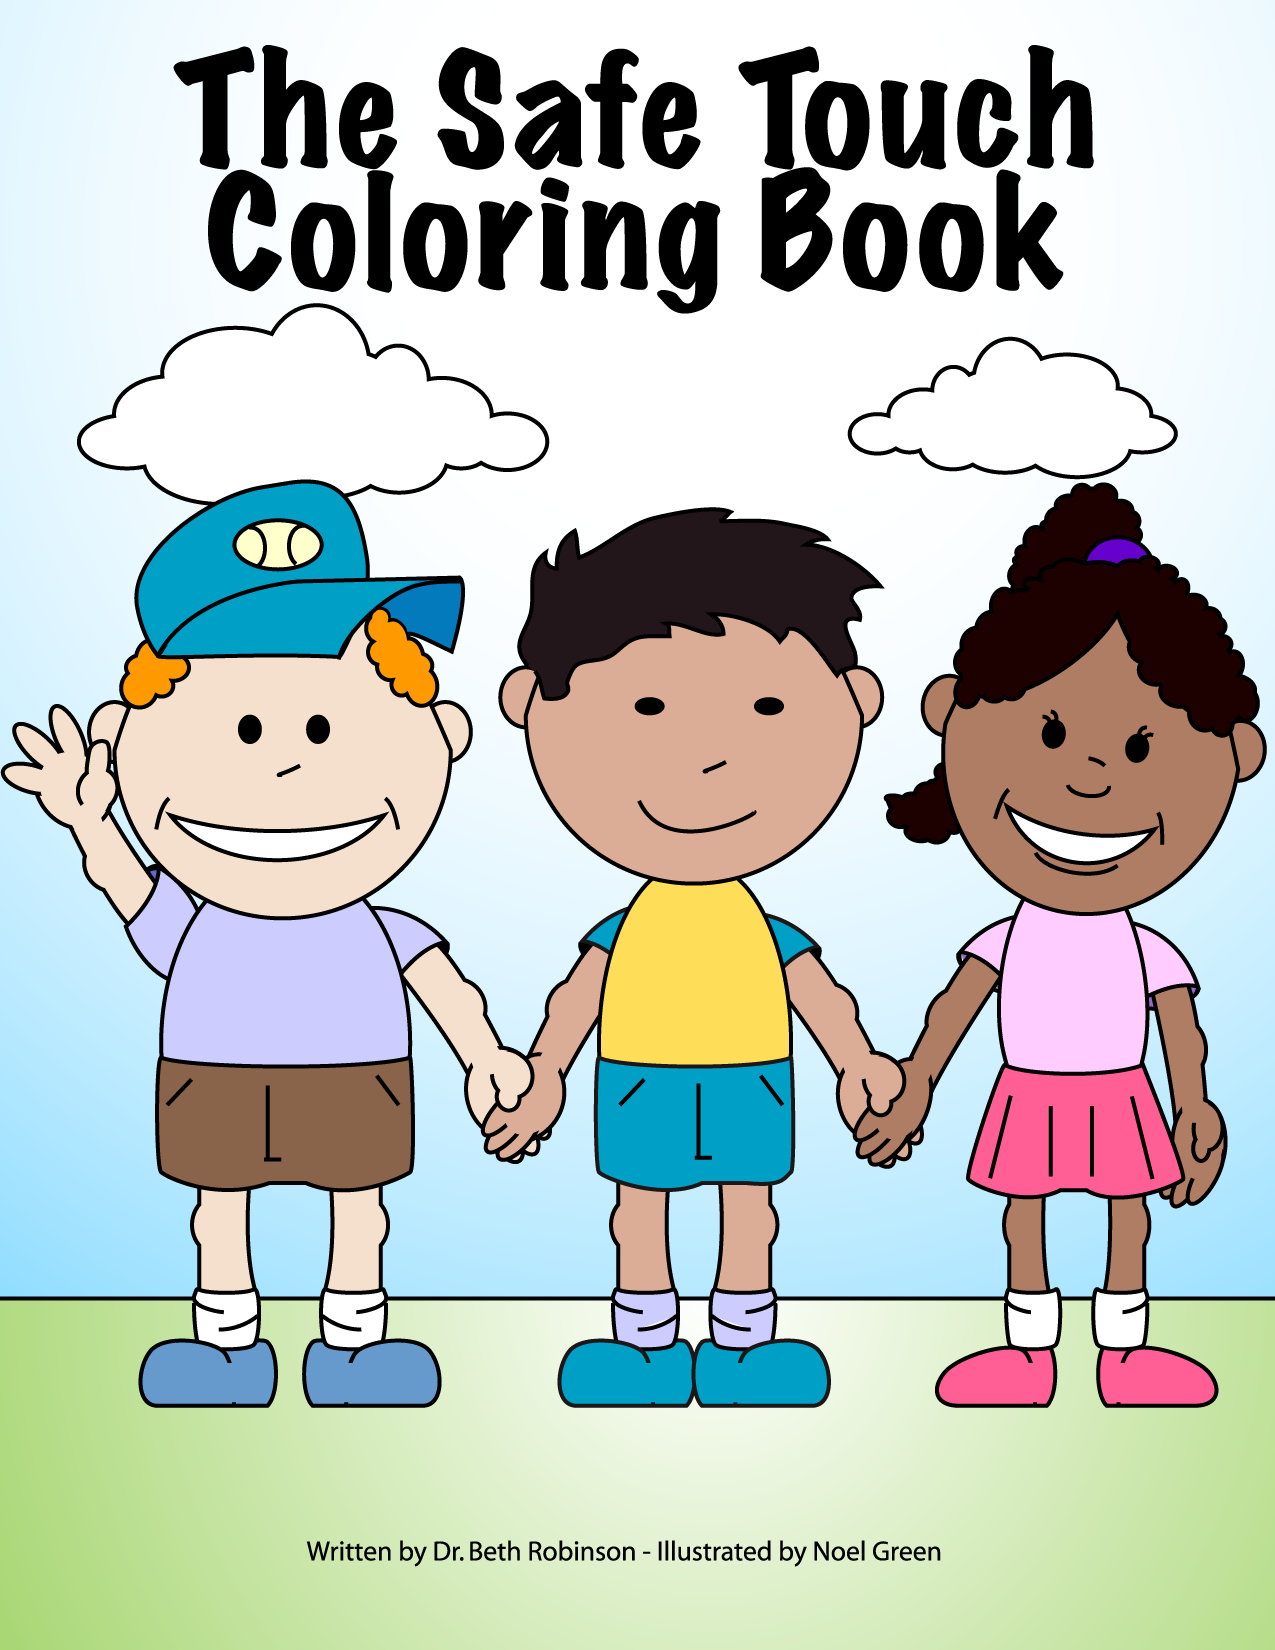 The Safe Touch Coloring Book Provides An Easy Way For